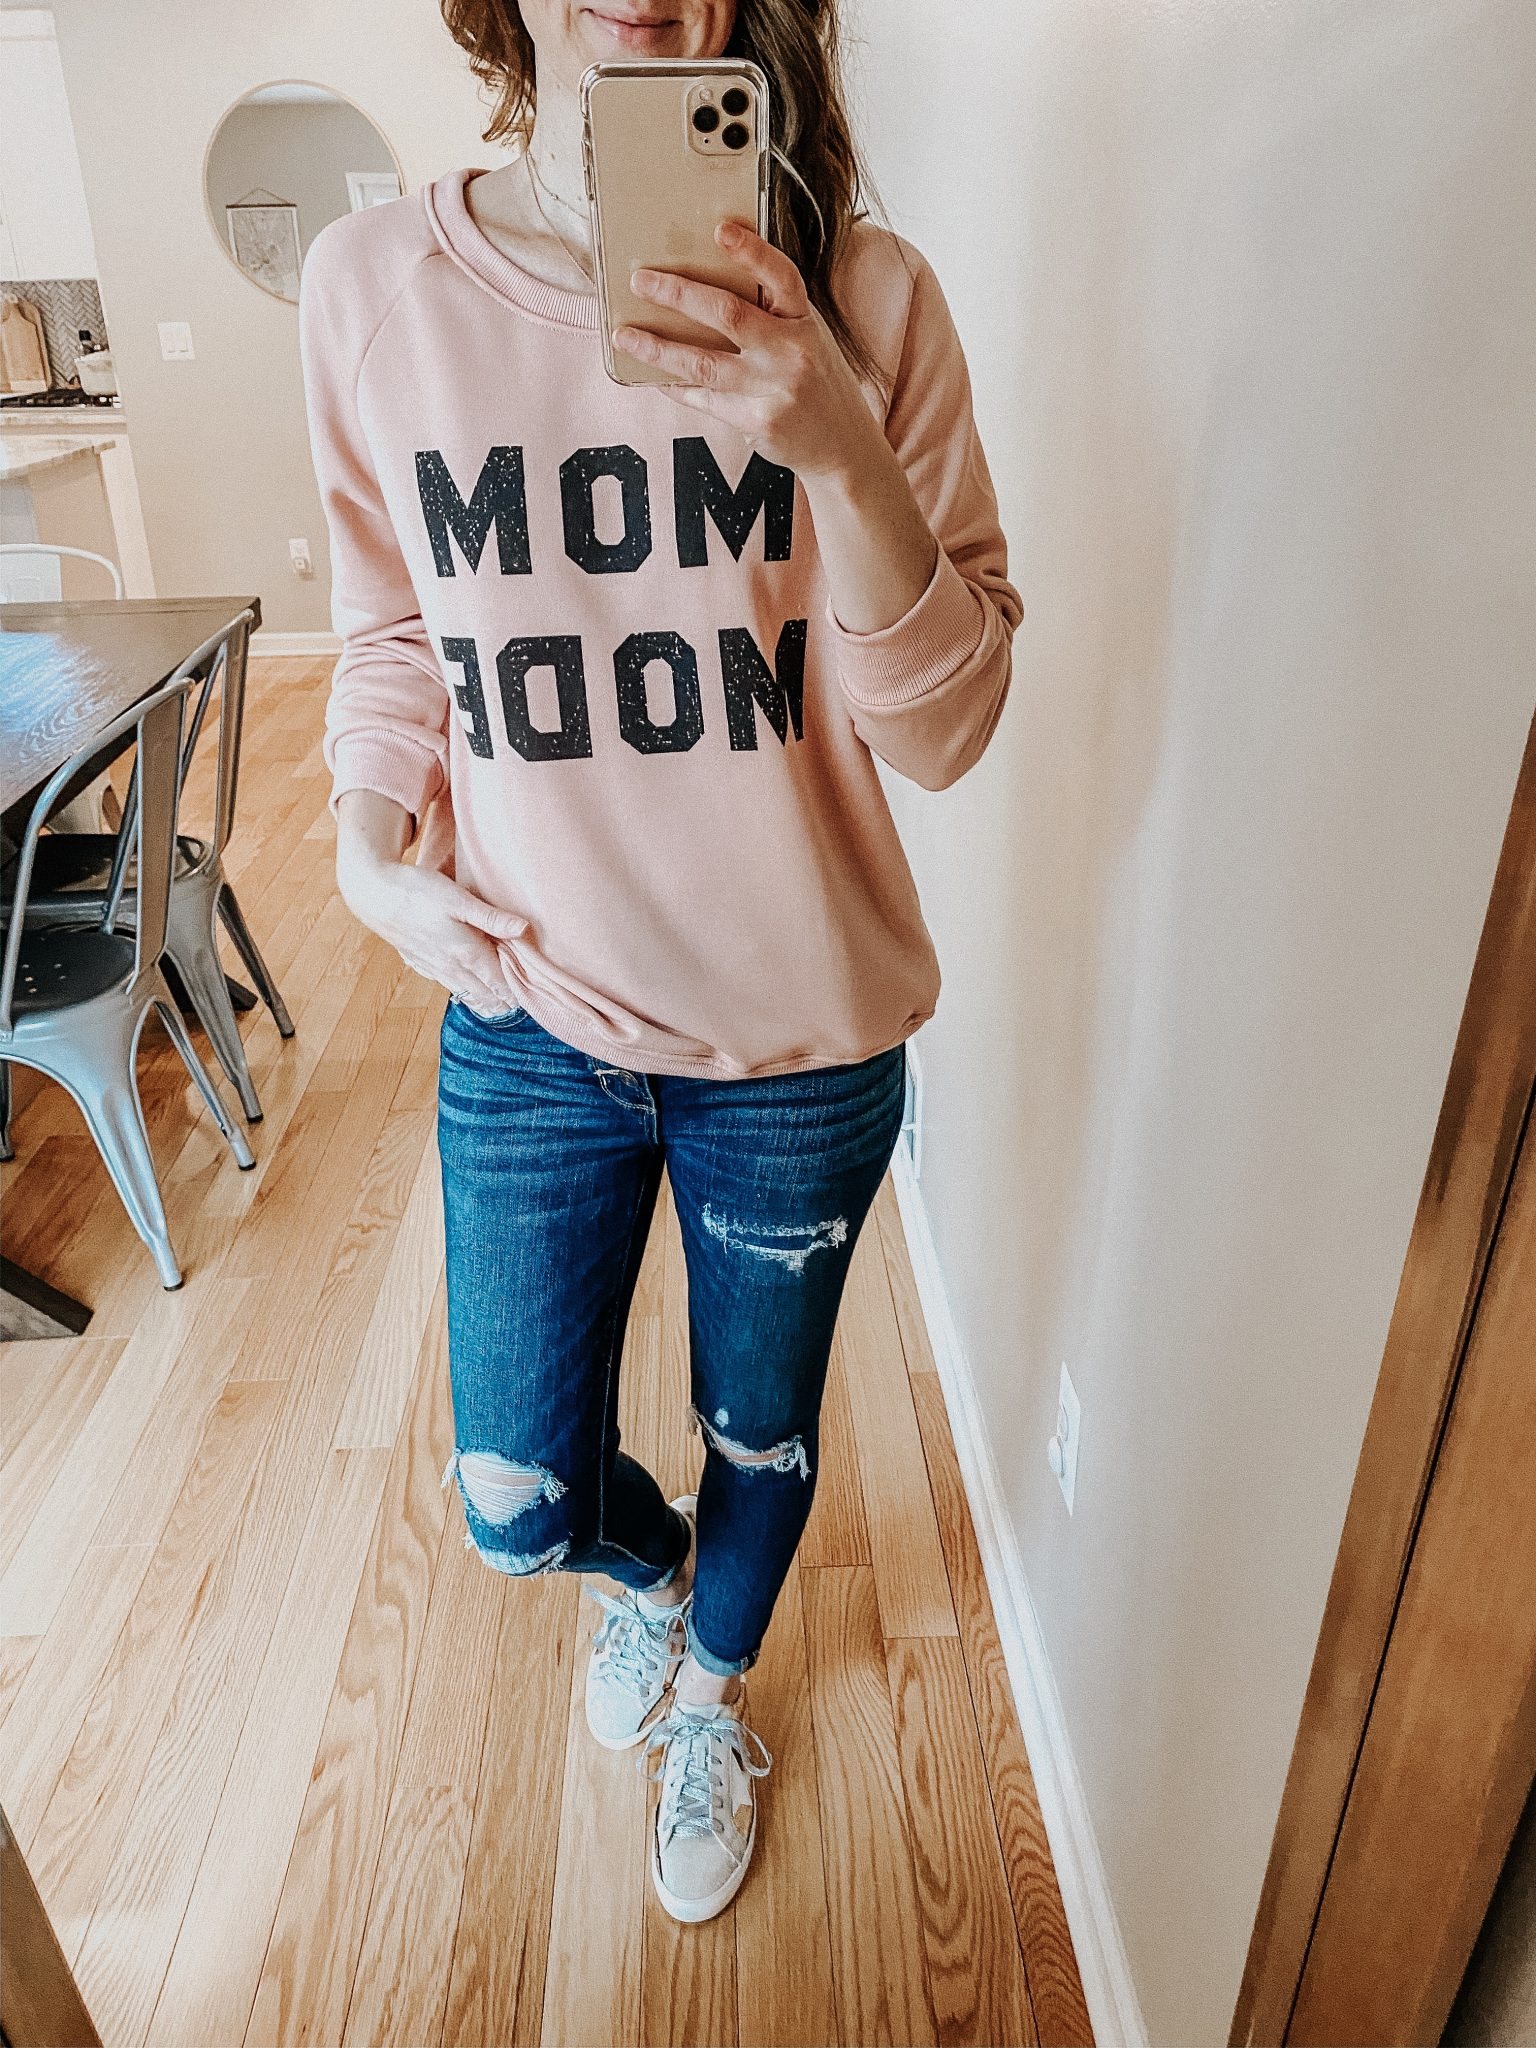 Graphic Sweatshirt Try On | Daily Splendor Life and Style Blog | Mom mode sweatshirt #momlife #momstyle #casualstyle